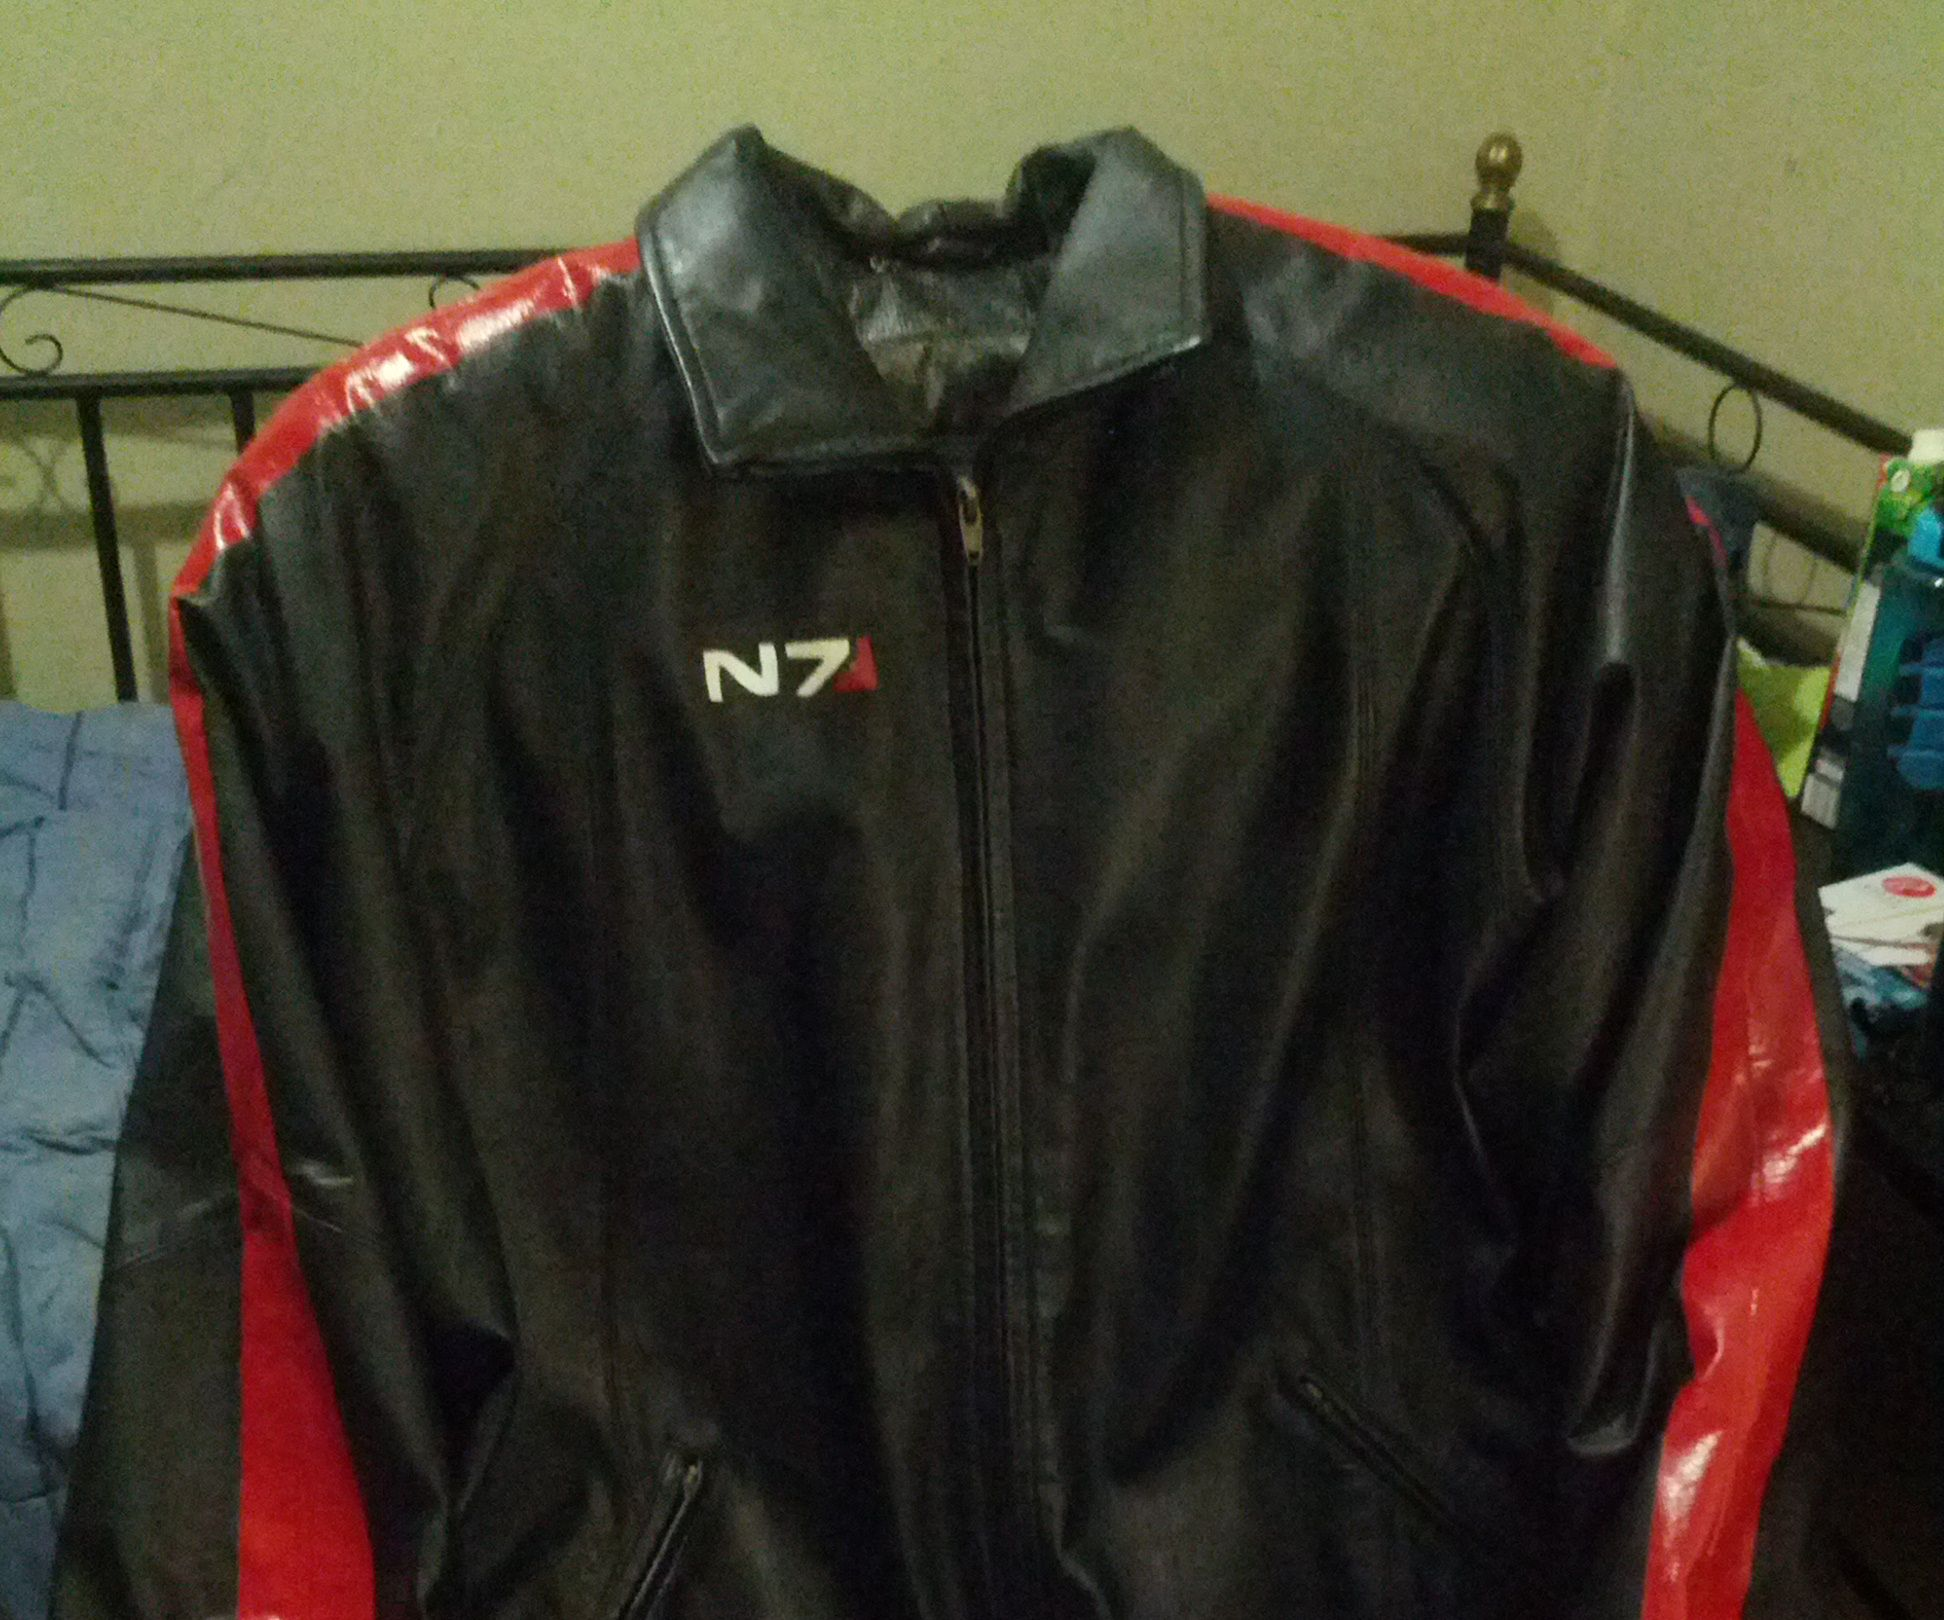 Make your own N7 Jacket